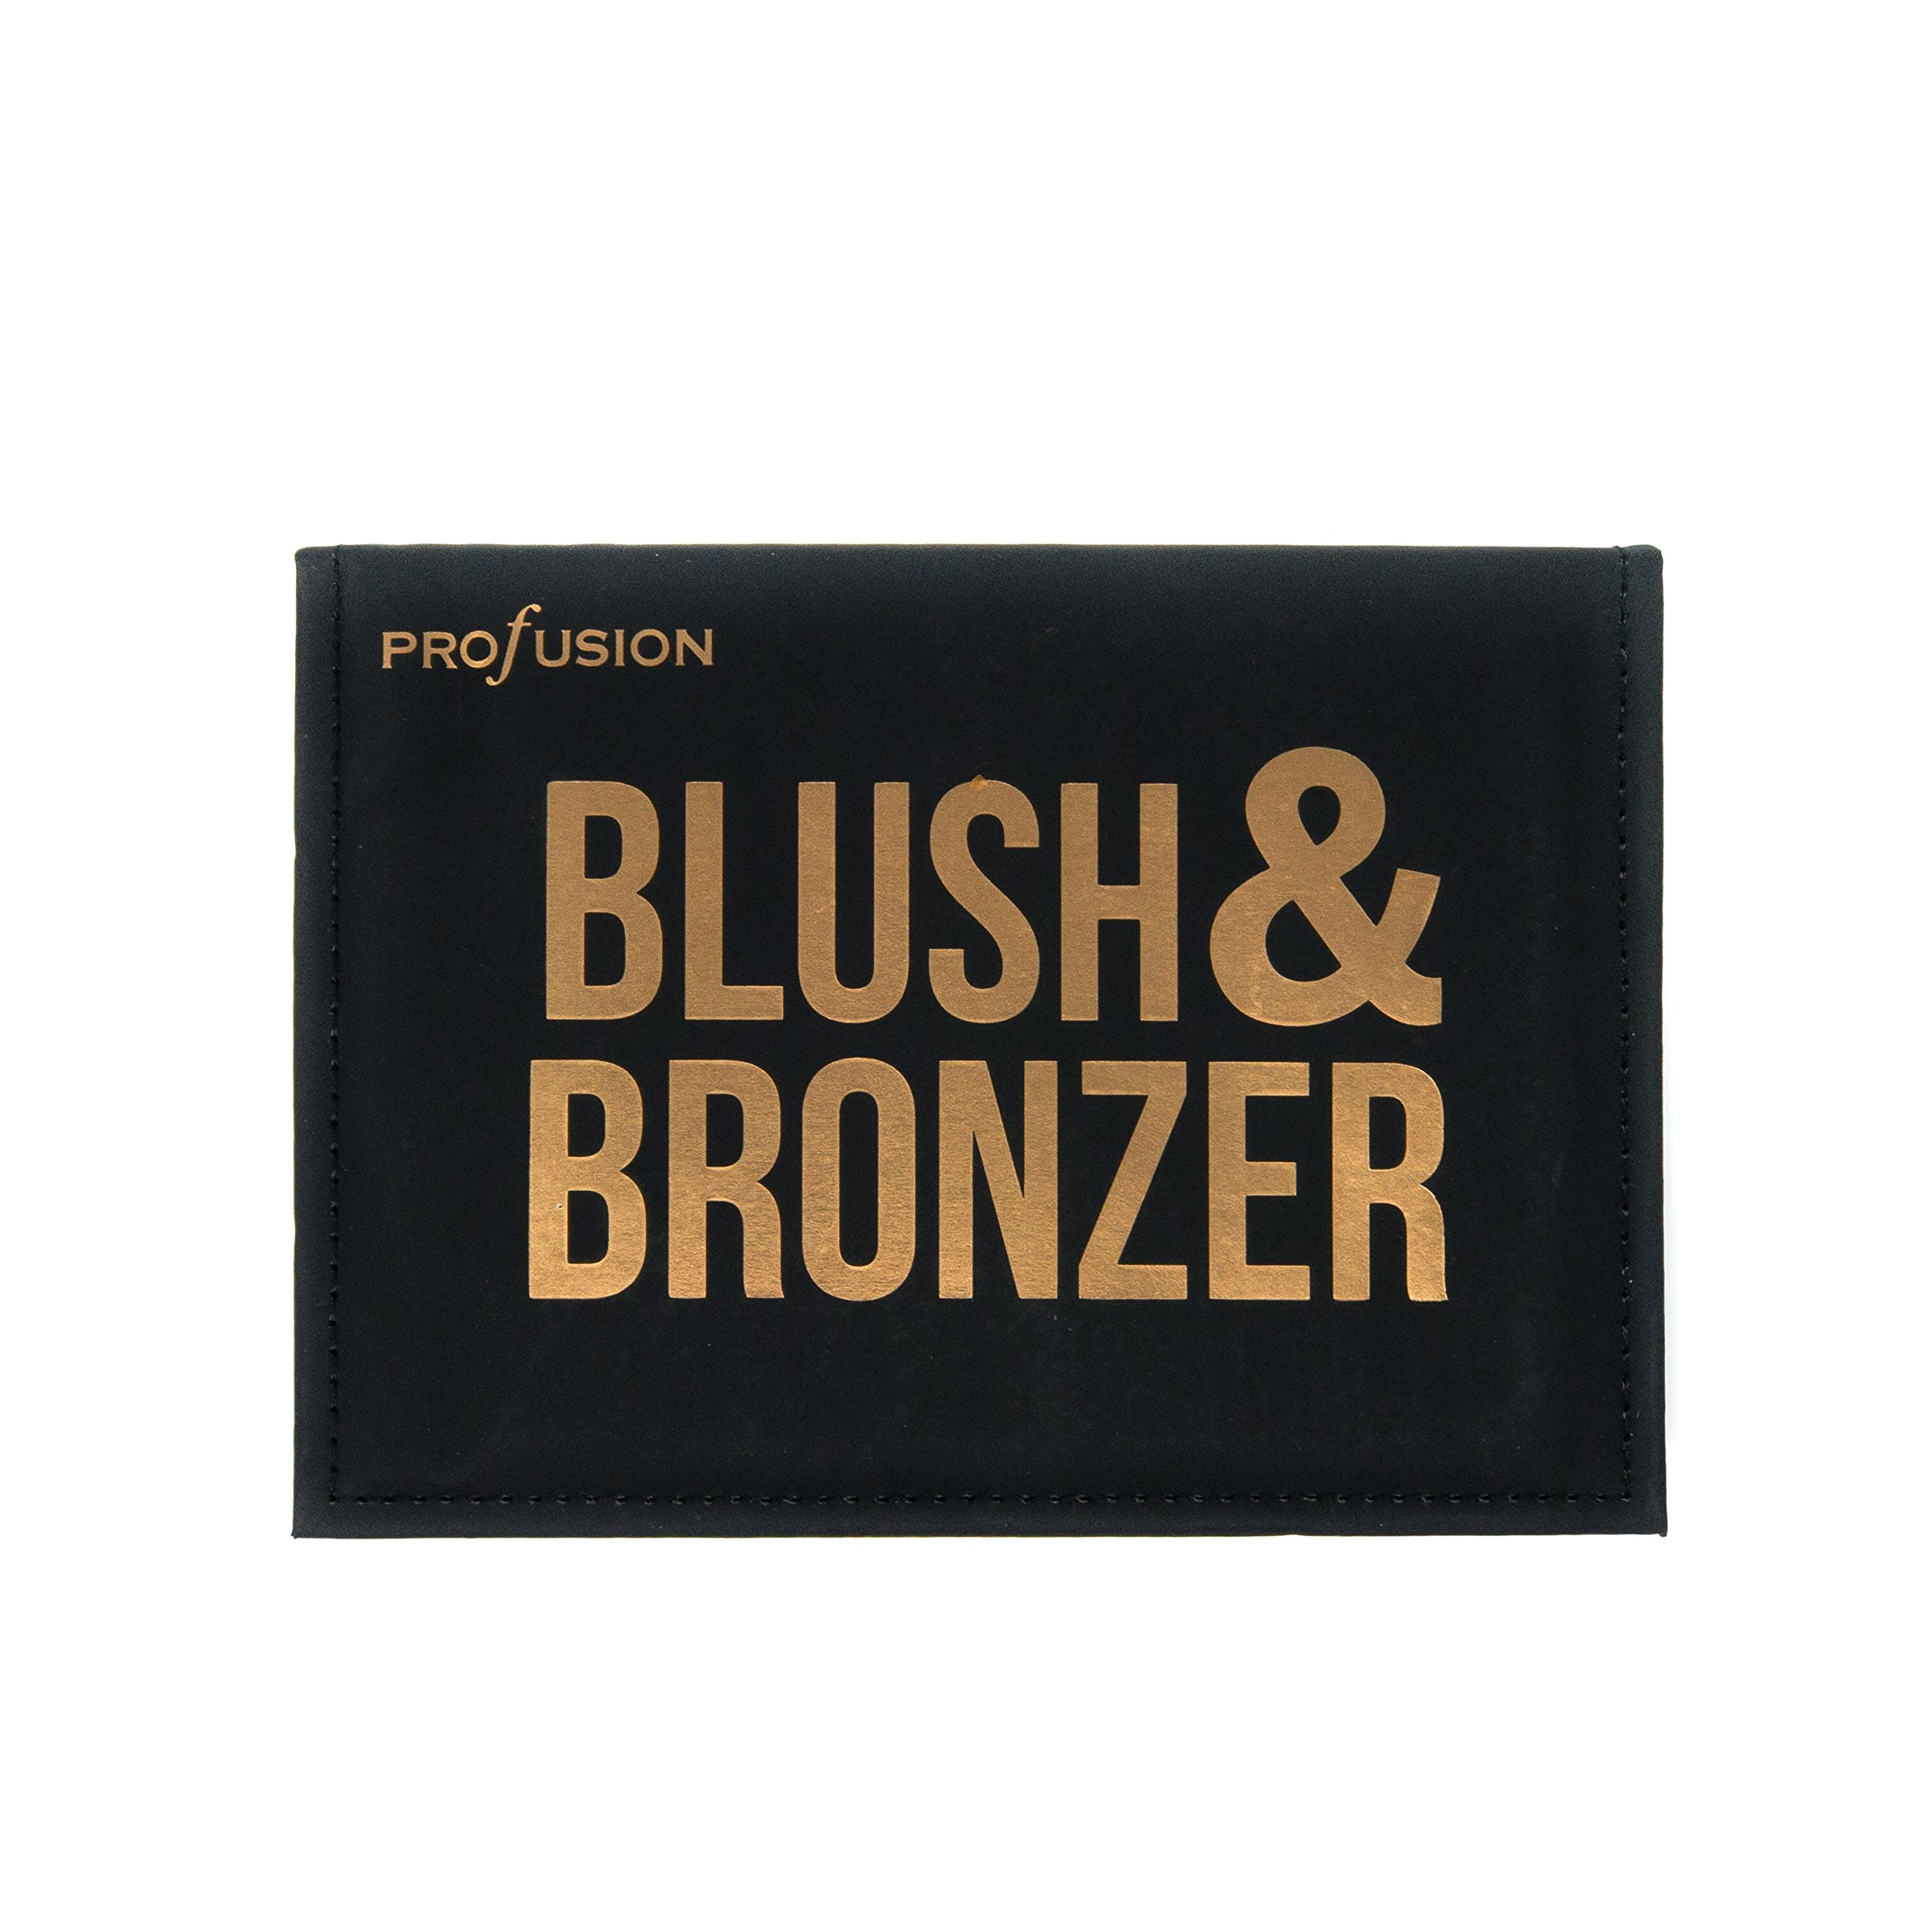 Profusion Cosmetics - Blush & Bronzer - Professional 8 Color Palette Makeup Kit Blush Highlighter Bronzer - Nude Highlight Champagne Highlight Light Bronze Shadow Bronze Pink Warm Peach Rose Pink by Profusion Cosmetics (Image #7)